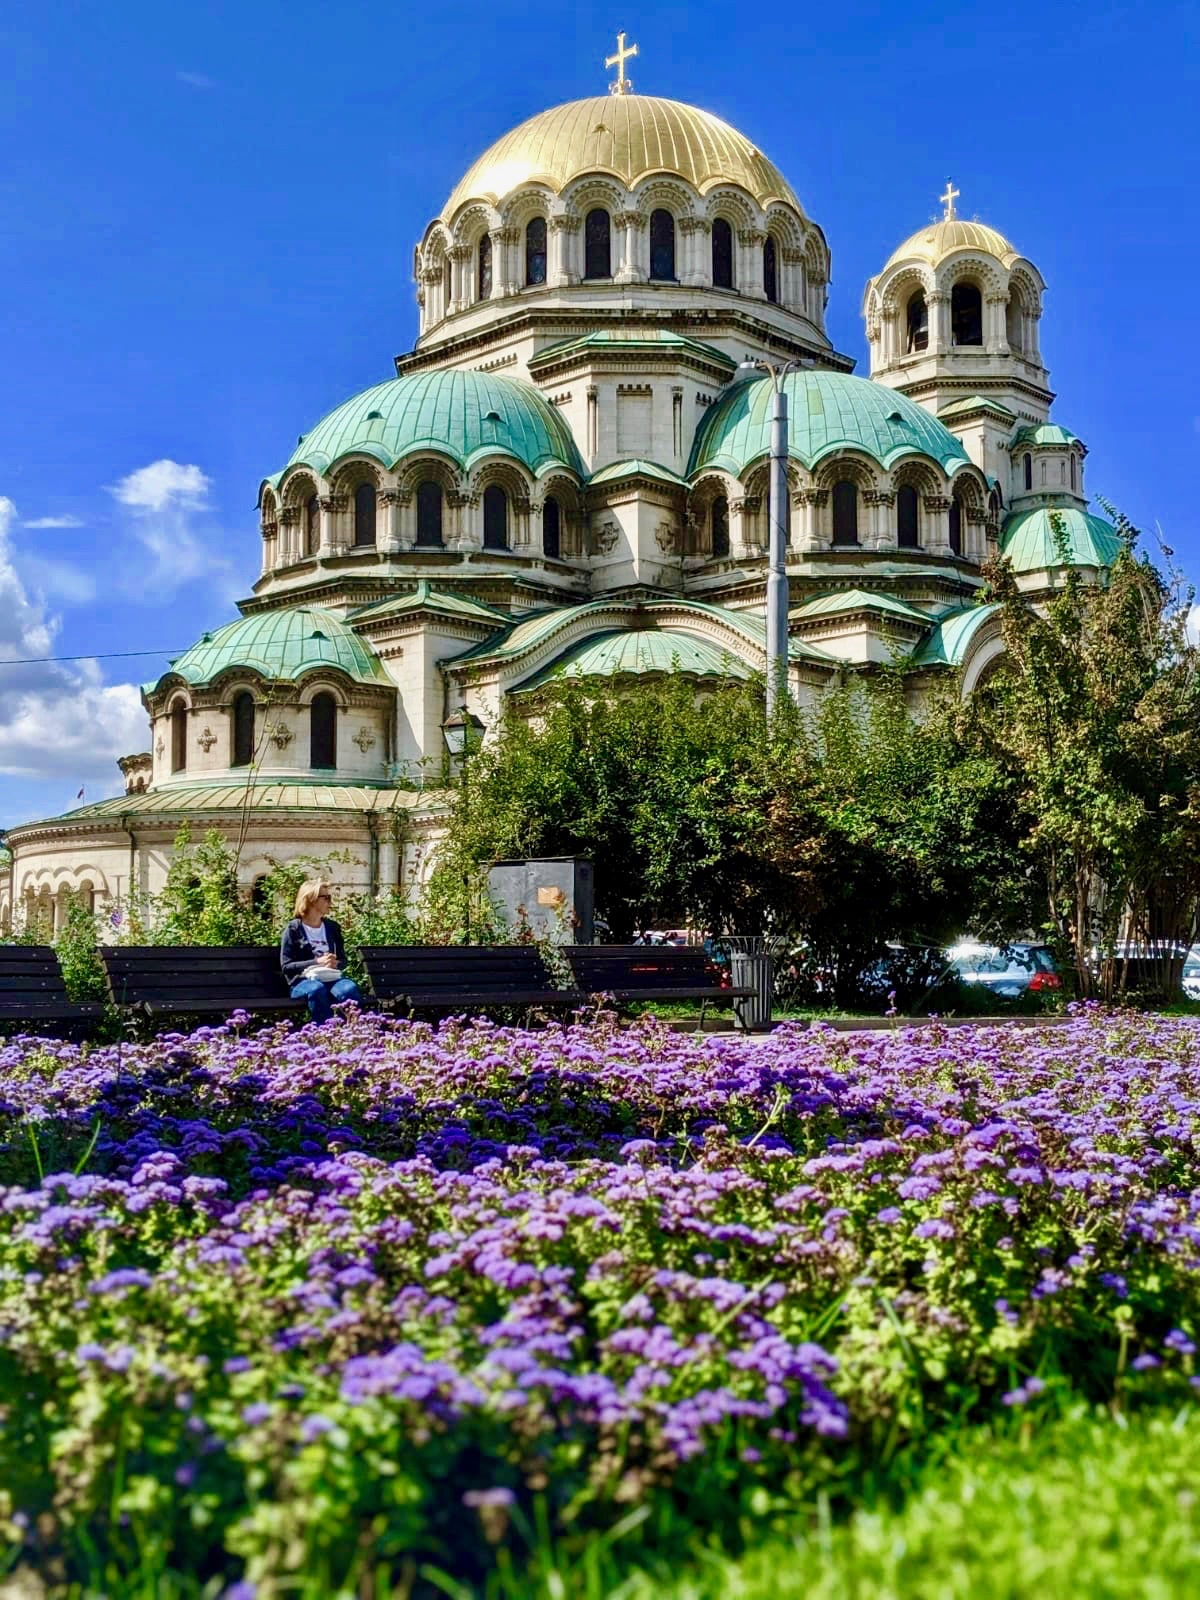 Istanbul Sofia Night Train: The Alexander Nevsky cathedral in Sofia. The sky is a bright blue in the background and there are bright purple flowers in the foreground.